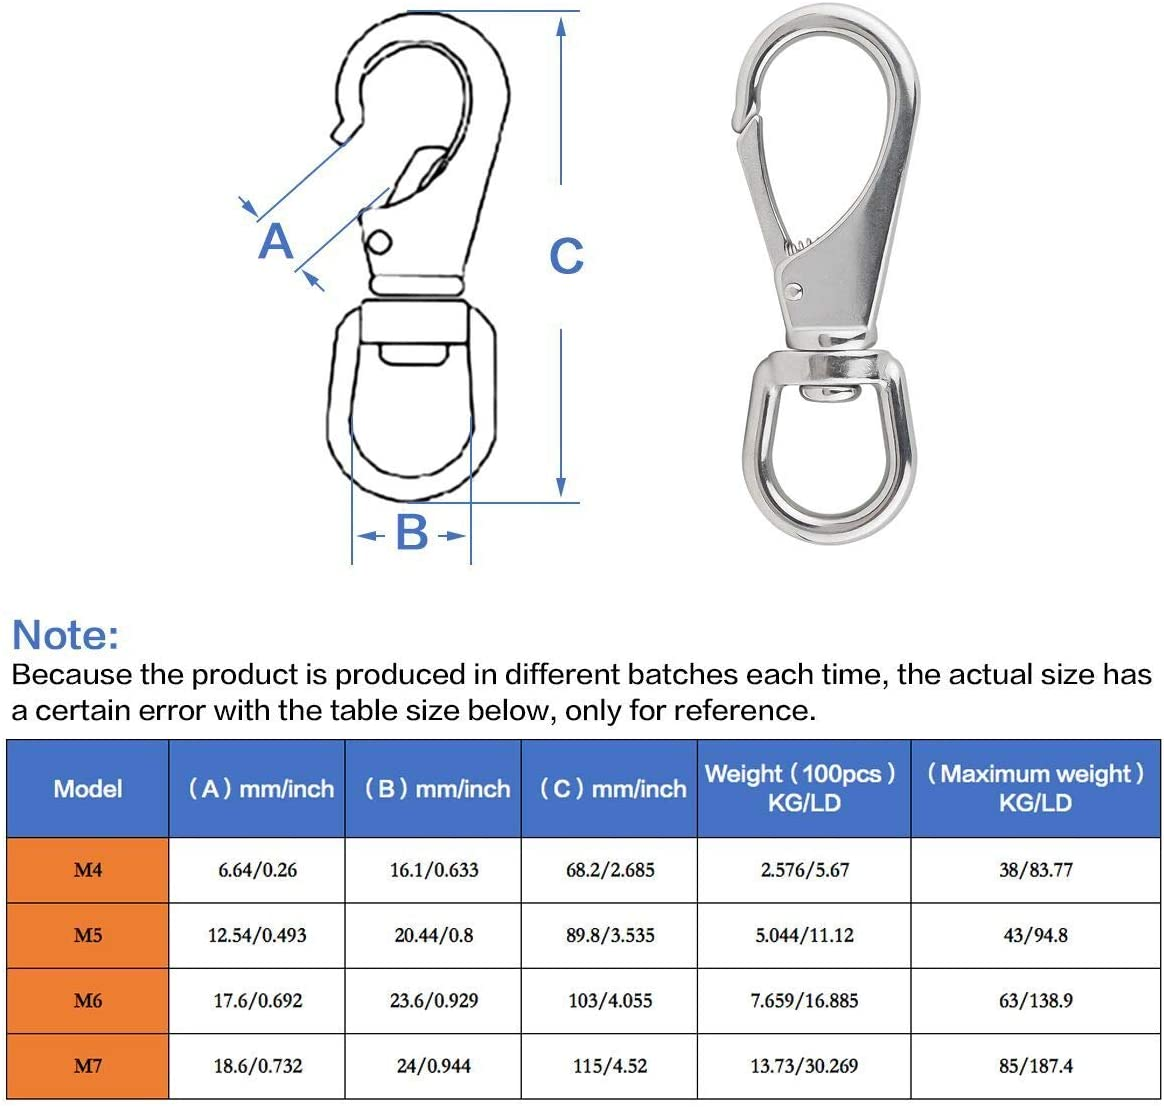 4 x 1-1//2 Inch Scuba Diving Clips Universal Marine Hardware Spring Buckles for Bird Feeders//Pet Chains//Collars//Keychains and More M6 2# BNYZWOT Stainless Steel Swivel Eye Snap Hooks 4-Pack